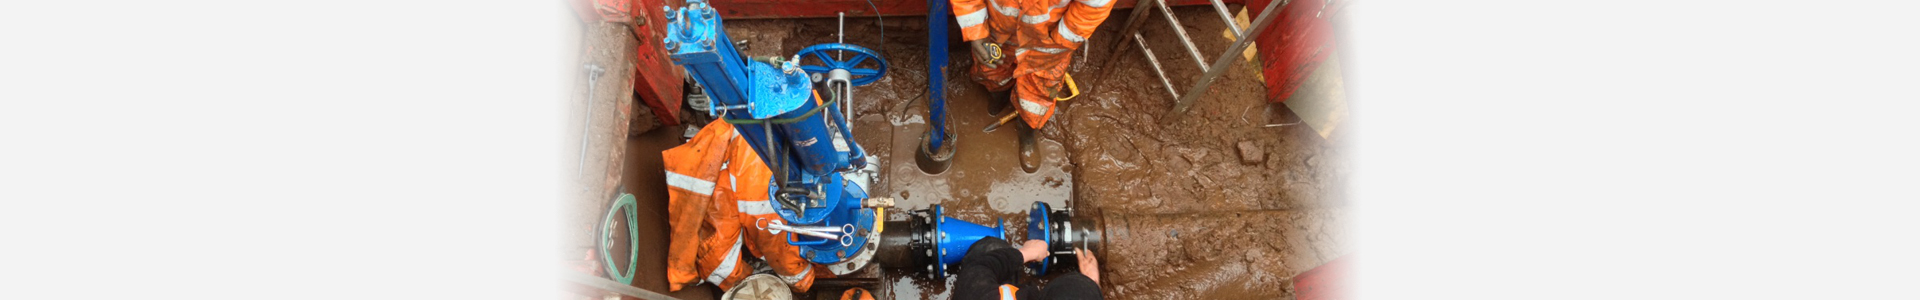 allied-pipe-freezing-services-ltd-services